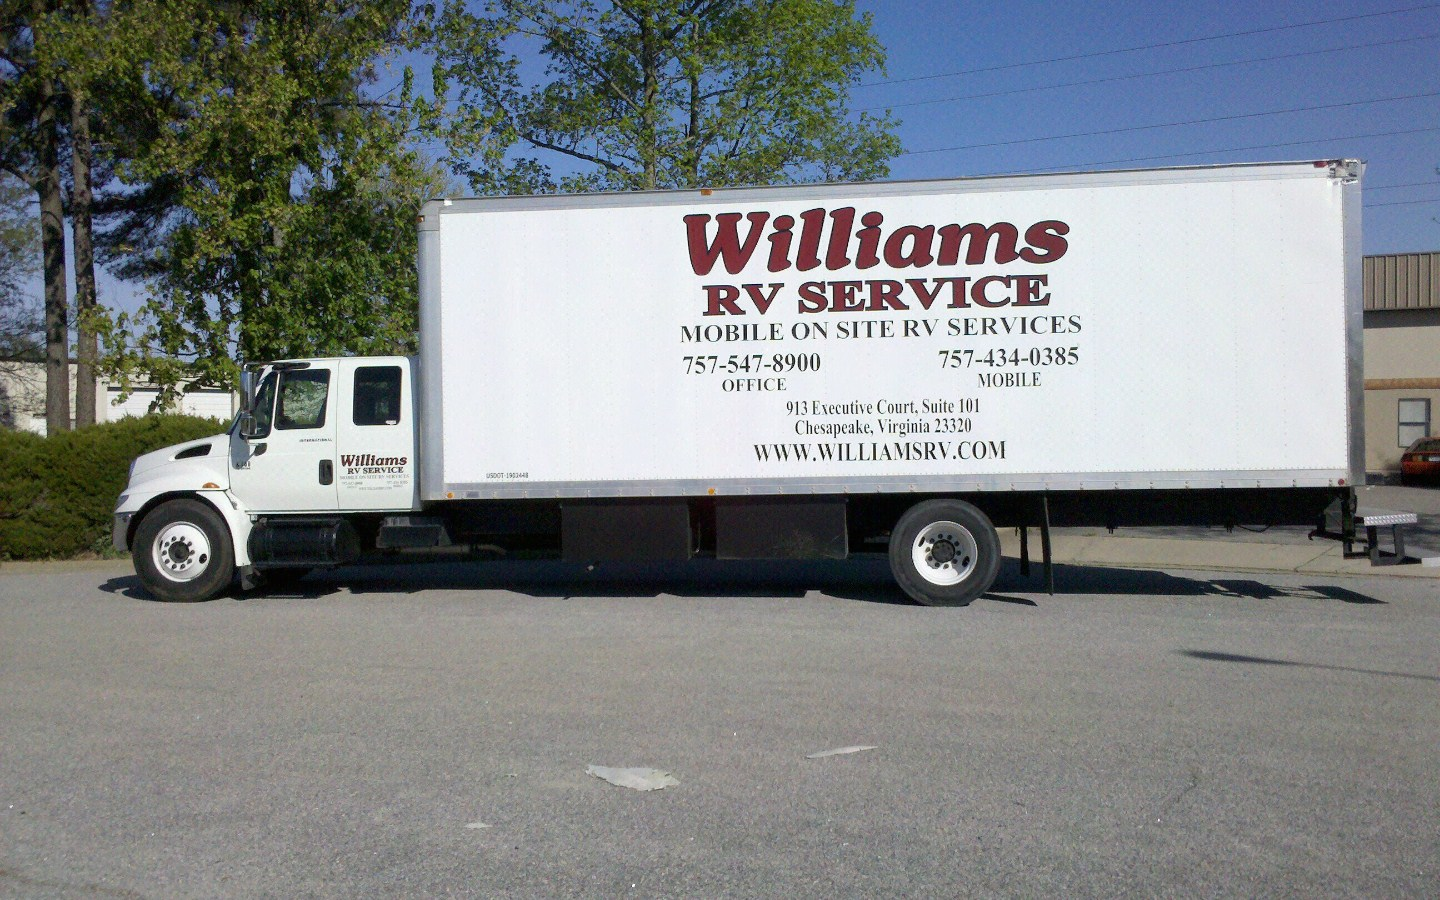 WILLIAMS RV SERVICE